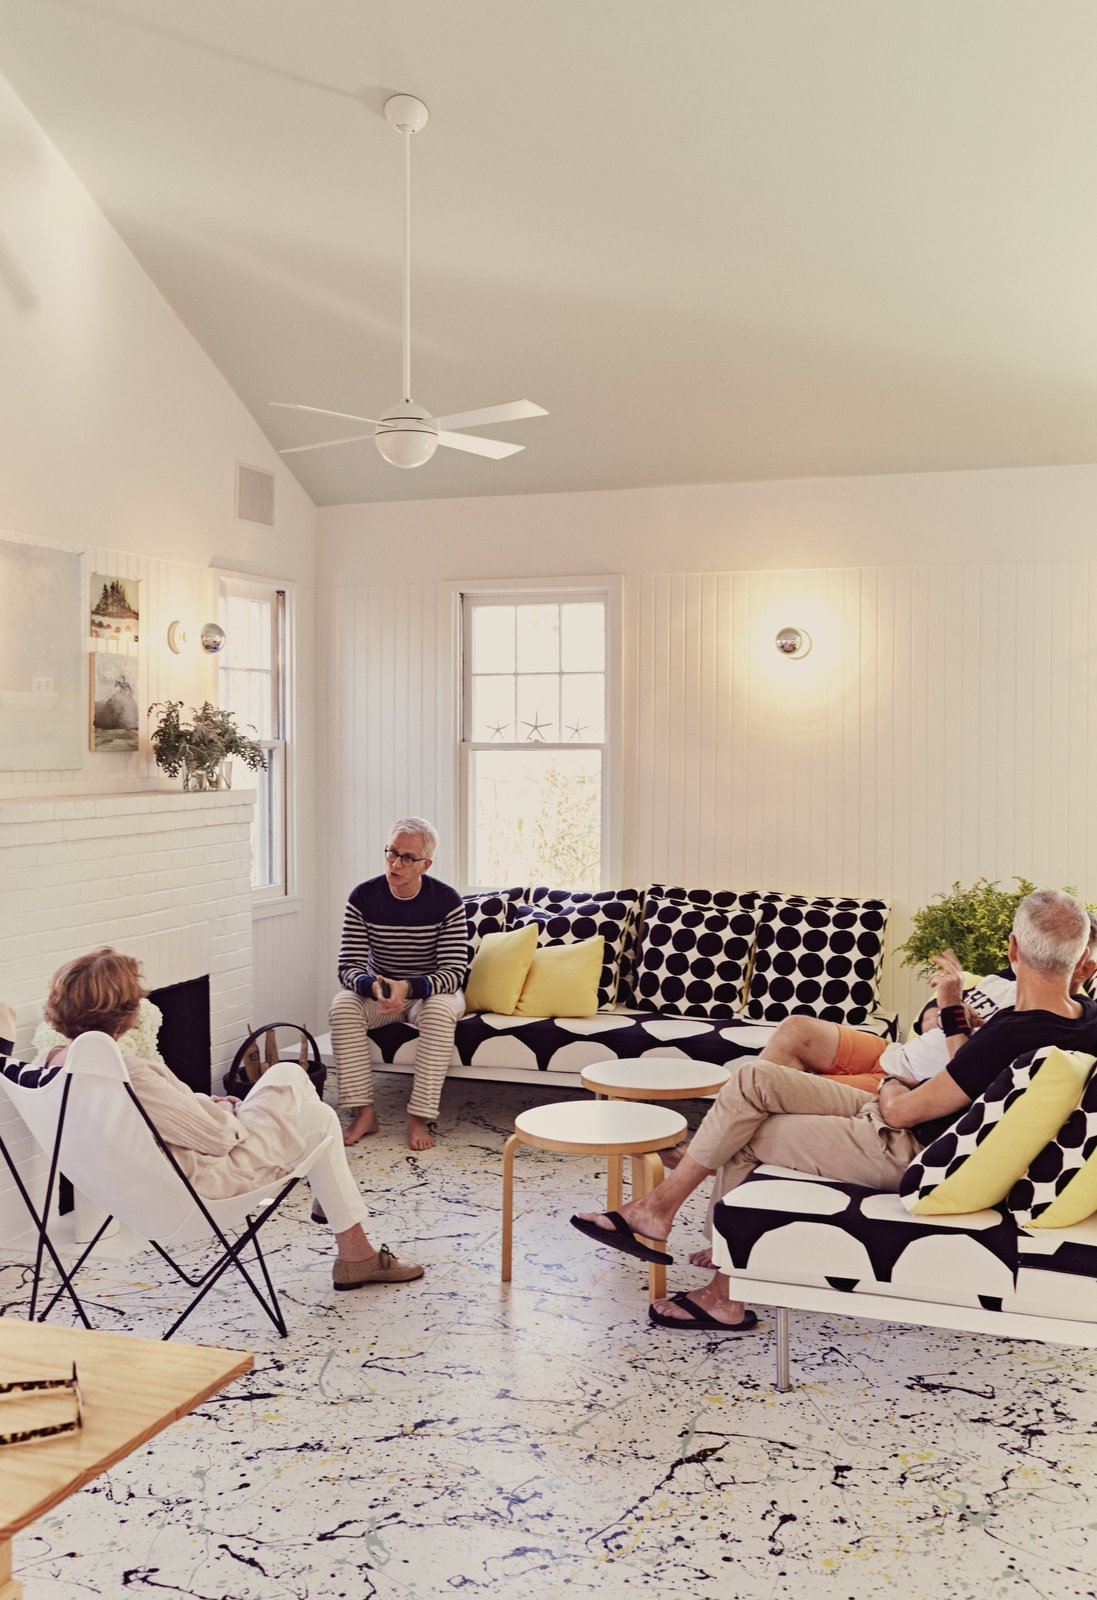 Residents Ann and Tony Spagnola sit with their architects, Peter Stamberg and Paul Aferiat, in front of the whitewashed brick fireplace in the living room. A vintage Butterfly chair joins custom sofas designed by the architects. Coffee tables by Alvar Aalto for Artek and pillows by Marimekko create a clean, Finnish-inflected environment. Tagged: Living Room, Chair, Coffee Tables, End Tables, Sofa, Table, and Wall Lighting.  Photo 2 of 5 in Damaged by Superstorm Sandy, a Fire Island Cottage is Rebuilt